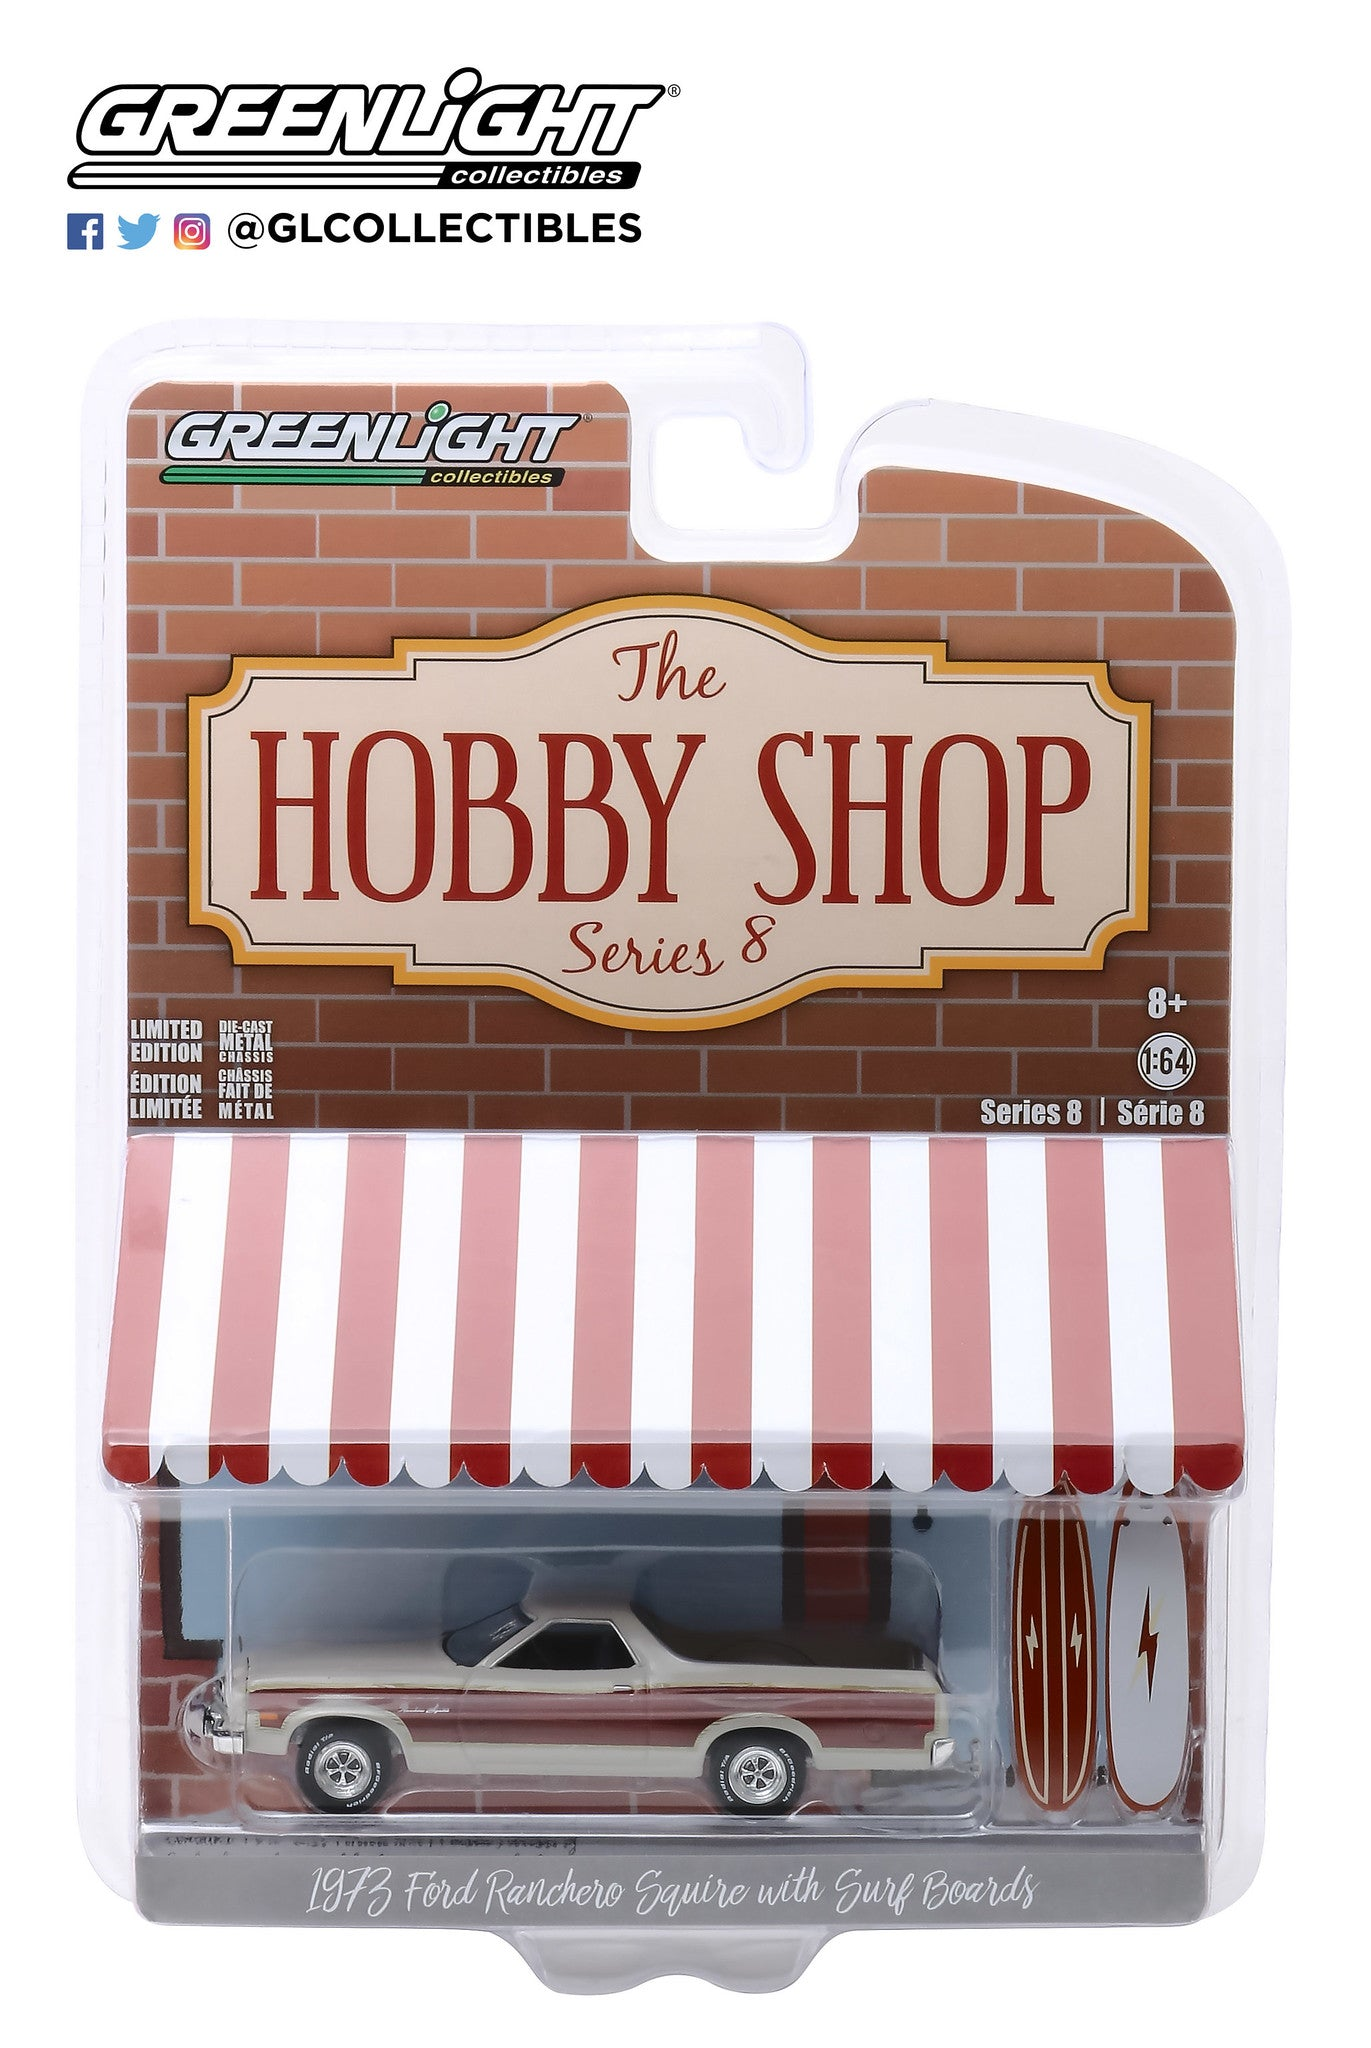 GreenLight 1:64 The Hobby Shop Series 8 - 1973 Ford Ranchero Squire with Surfboards 97080-A